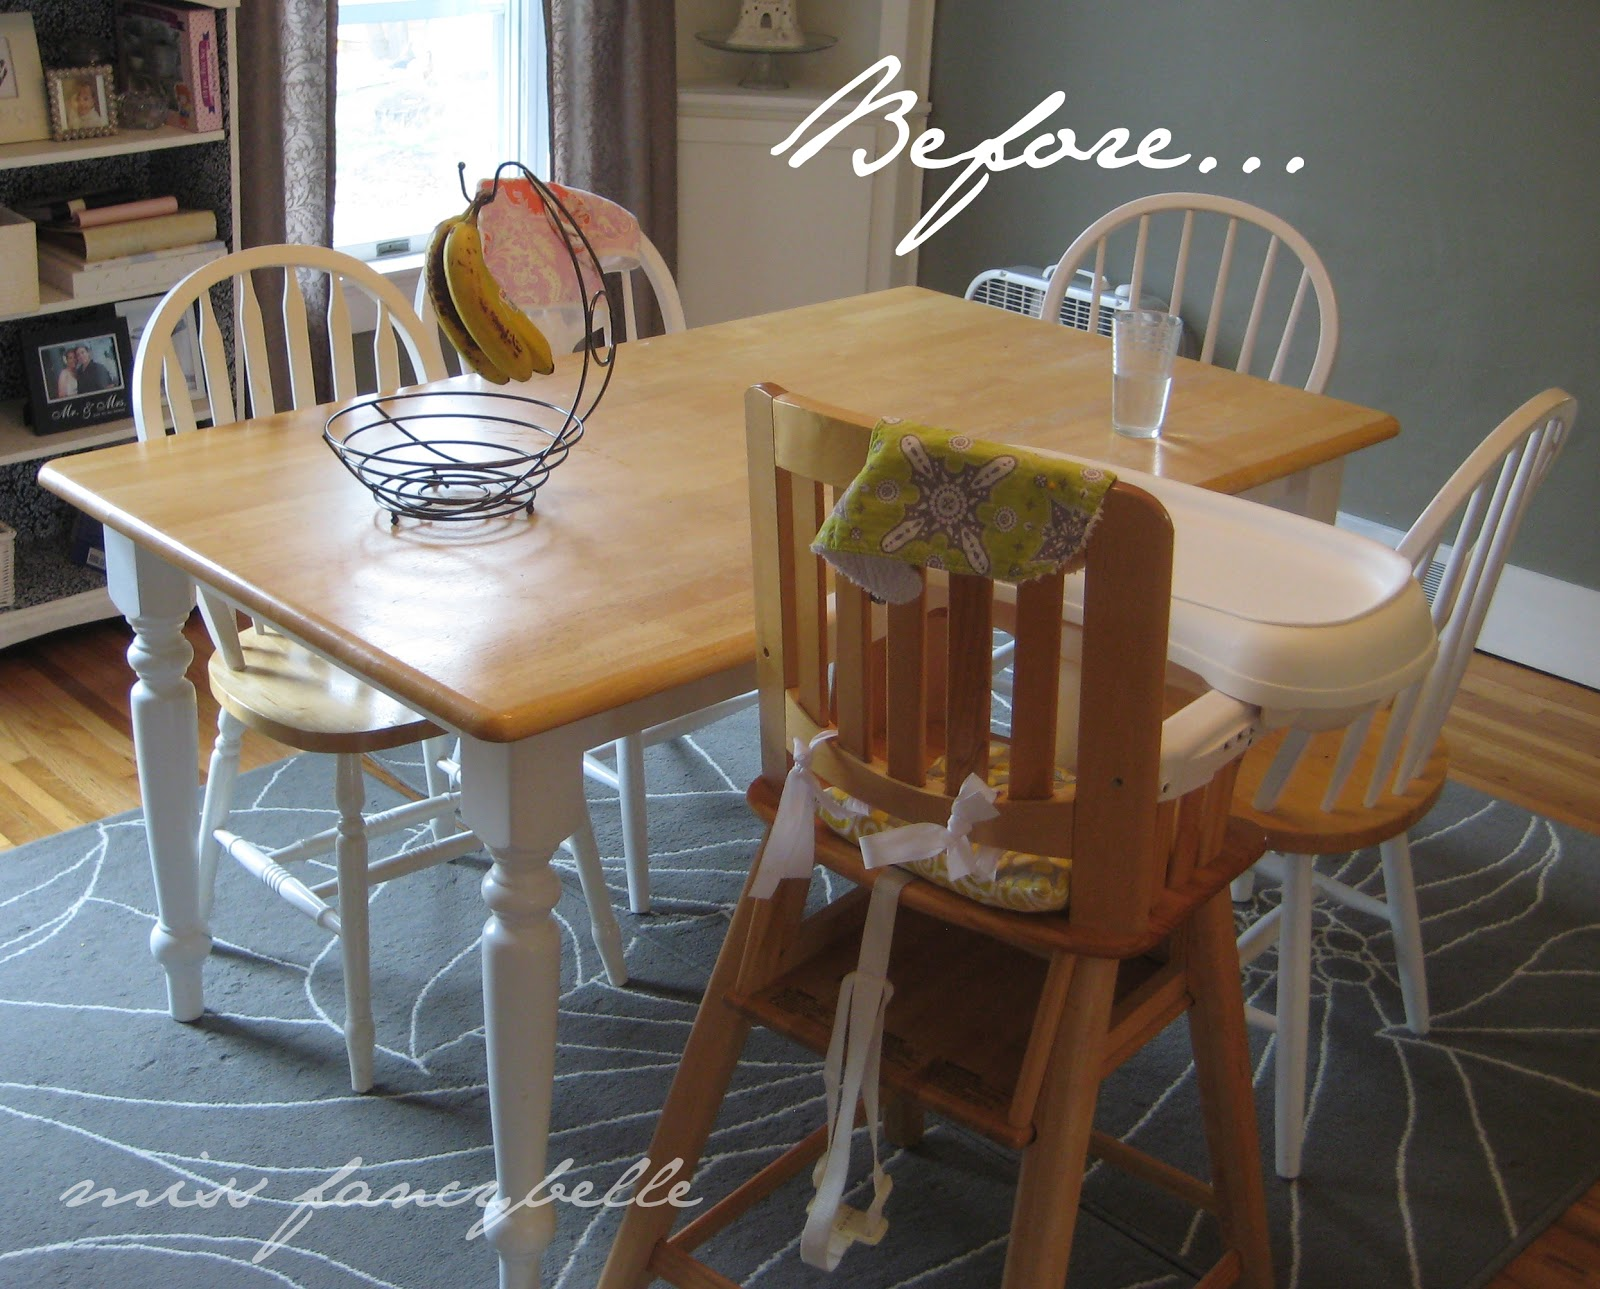 Miss fancybelle our dining table makeover for Dining room table makeover ideas